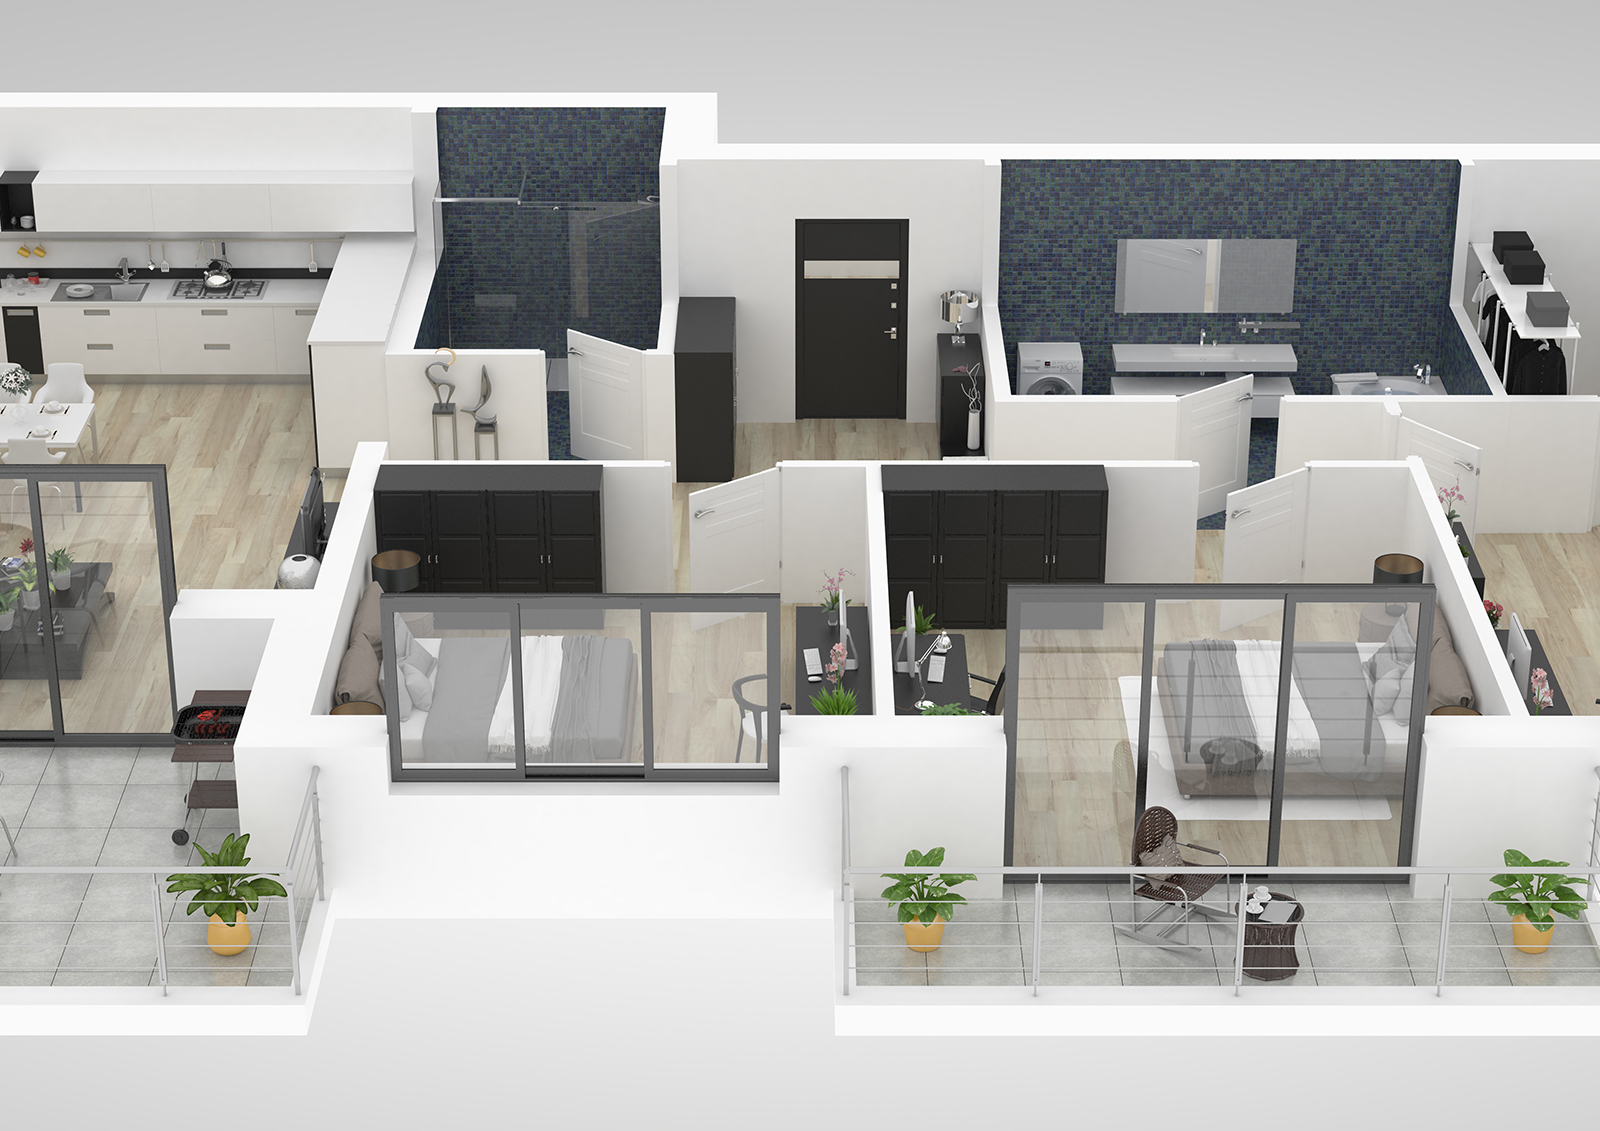 Floor plan of a house top view 3D illustration. Open concept liv